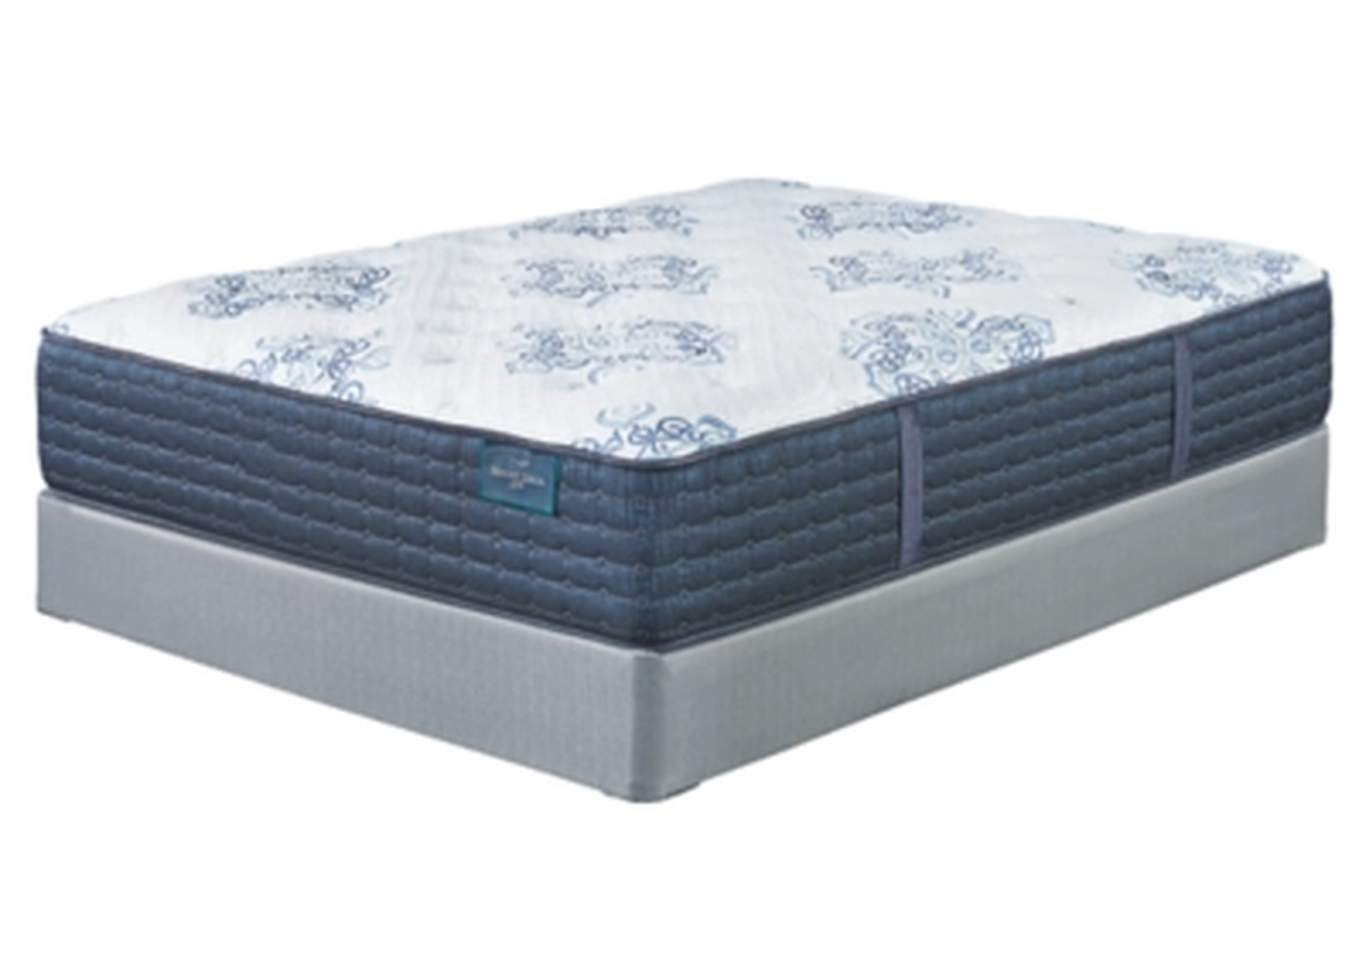 Mount Dana Firm White King Mattress,Sierra Sleep by Ashley